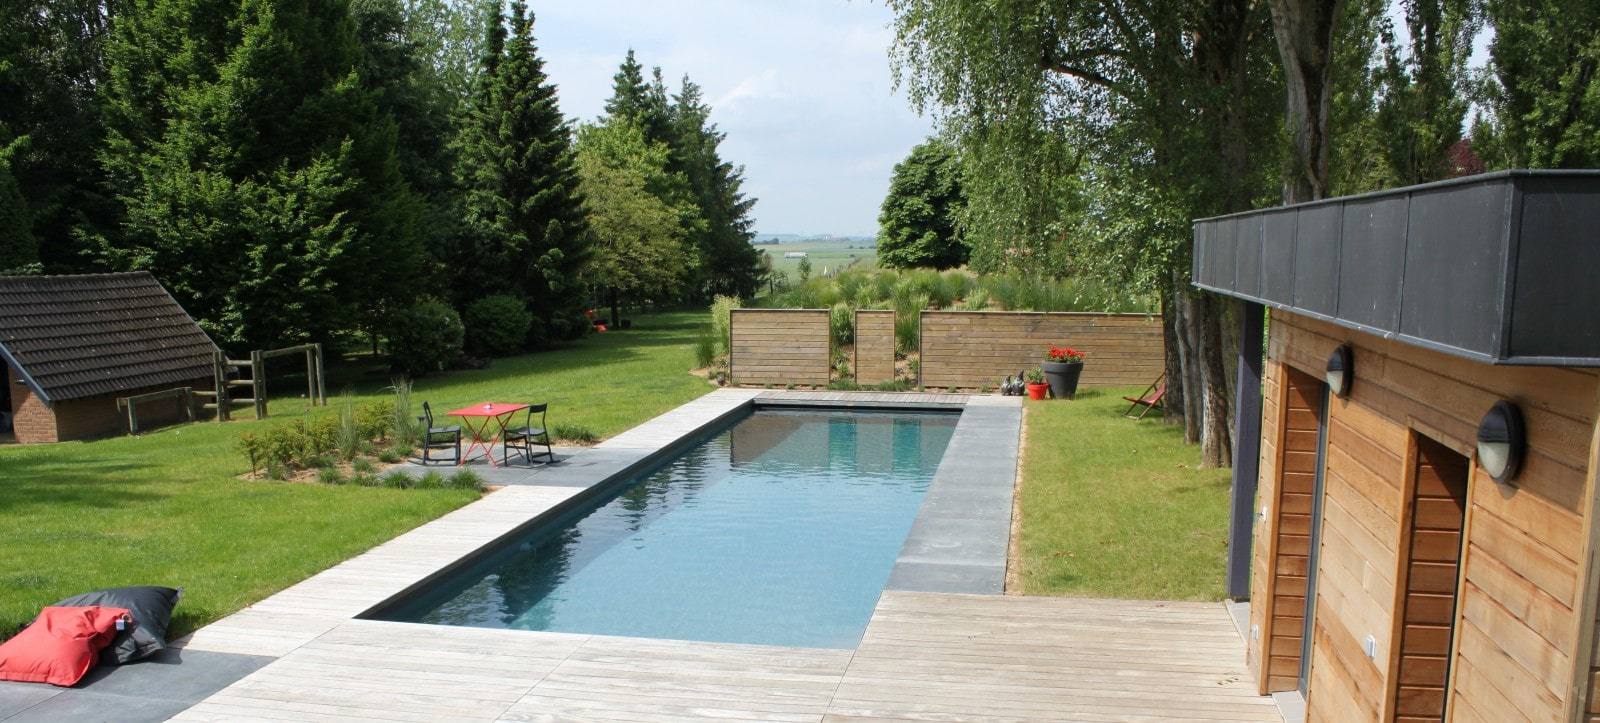 Am nagement agencement et cr ation d espaces ext rieurs for Amenagement exterieur piscine